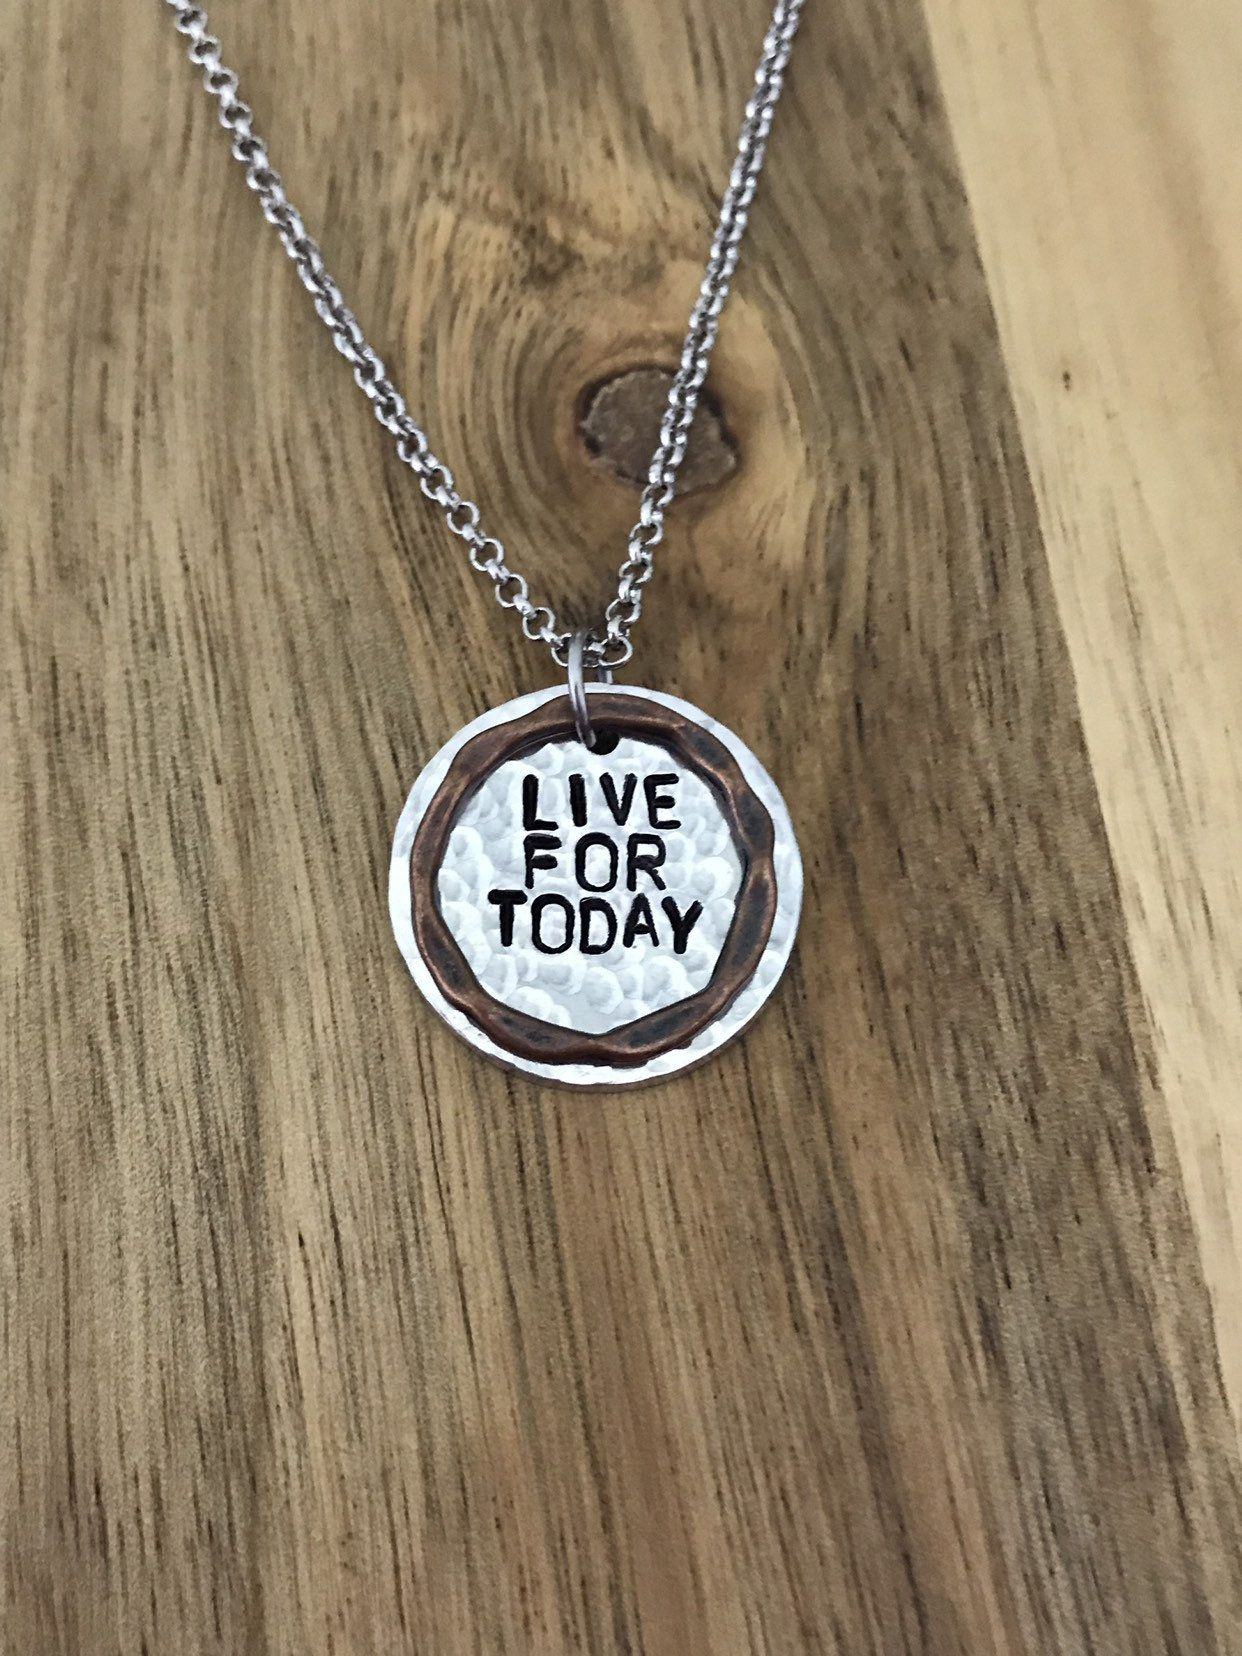 Live For Today Necklace Jewelry Gift Hammered Layered